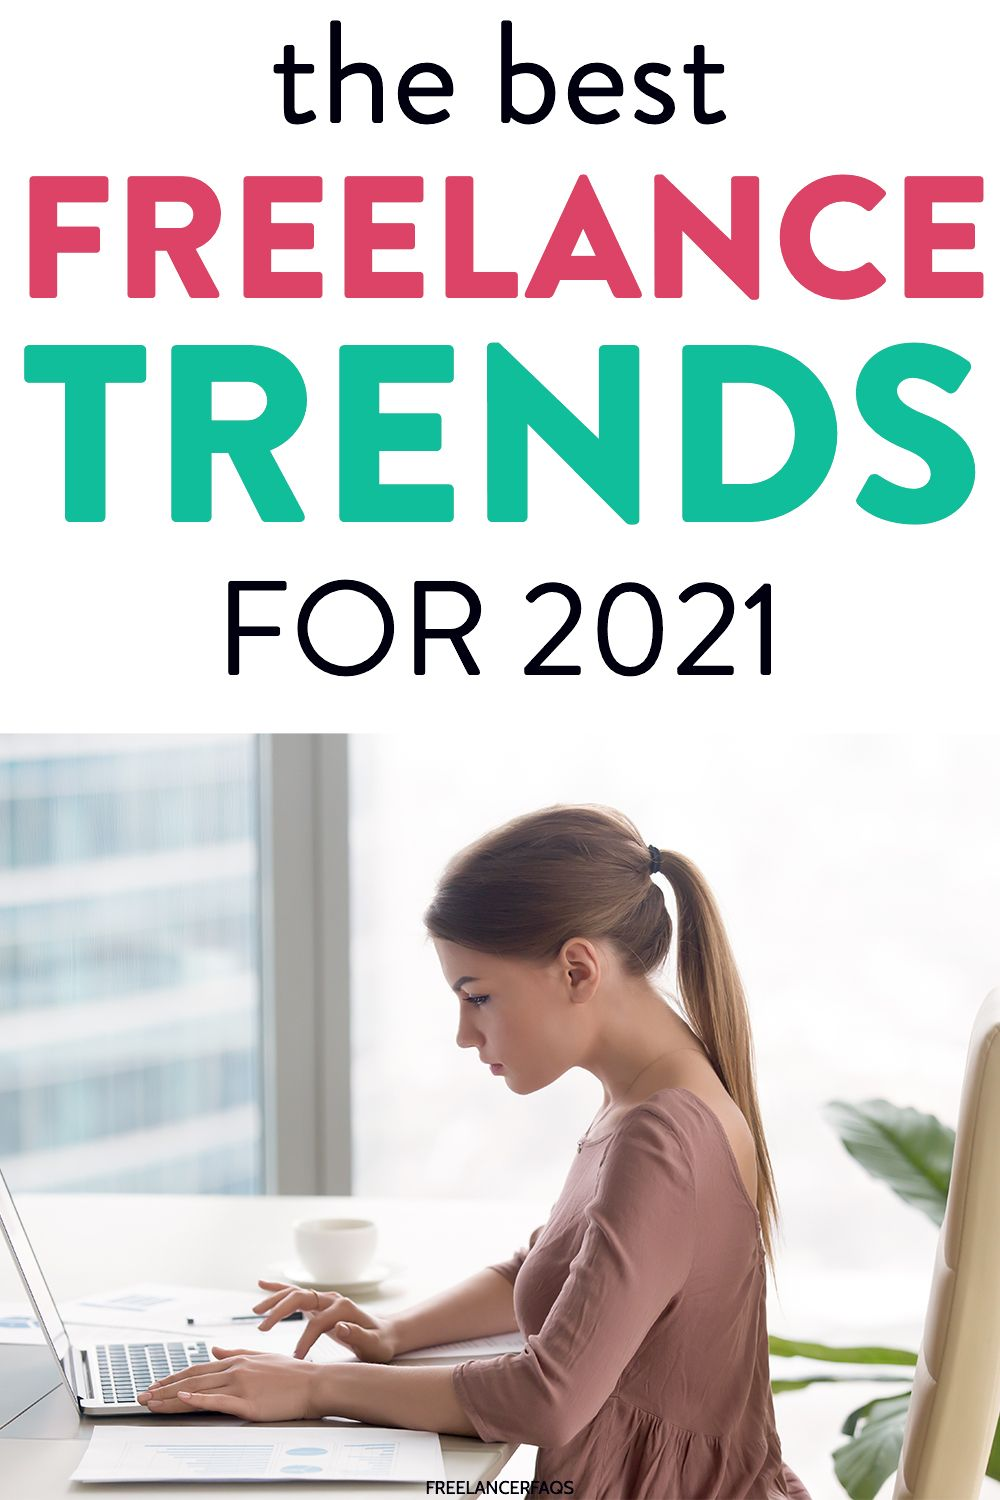 What Are The Important Freelance Trends To Watch In 2021 Freelancer Faqs In 2021 Freelance Freelancing Jobs Freelance Writing Jobs